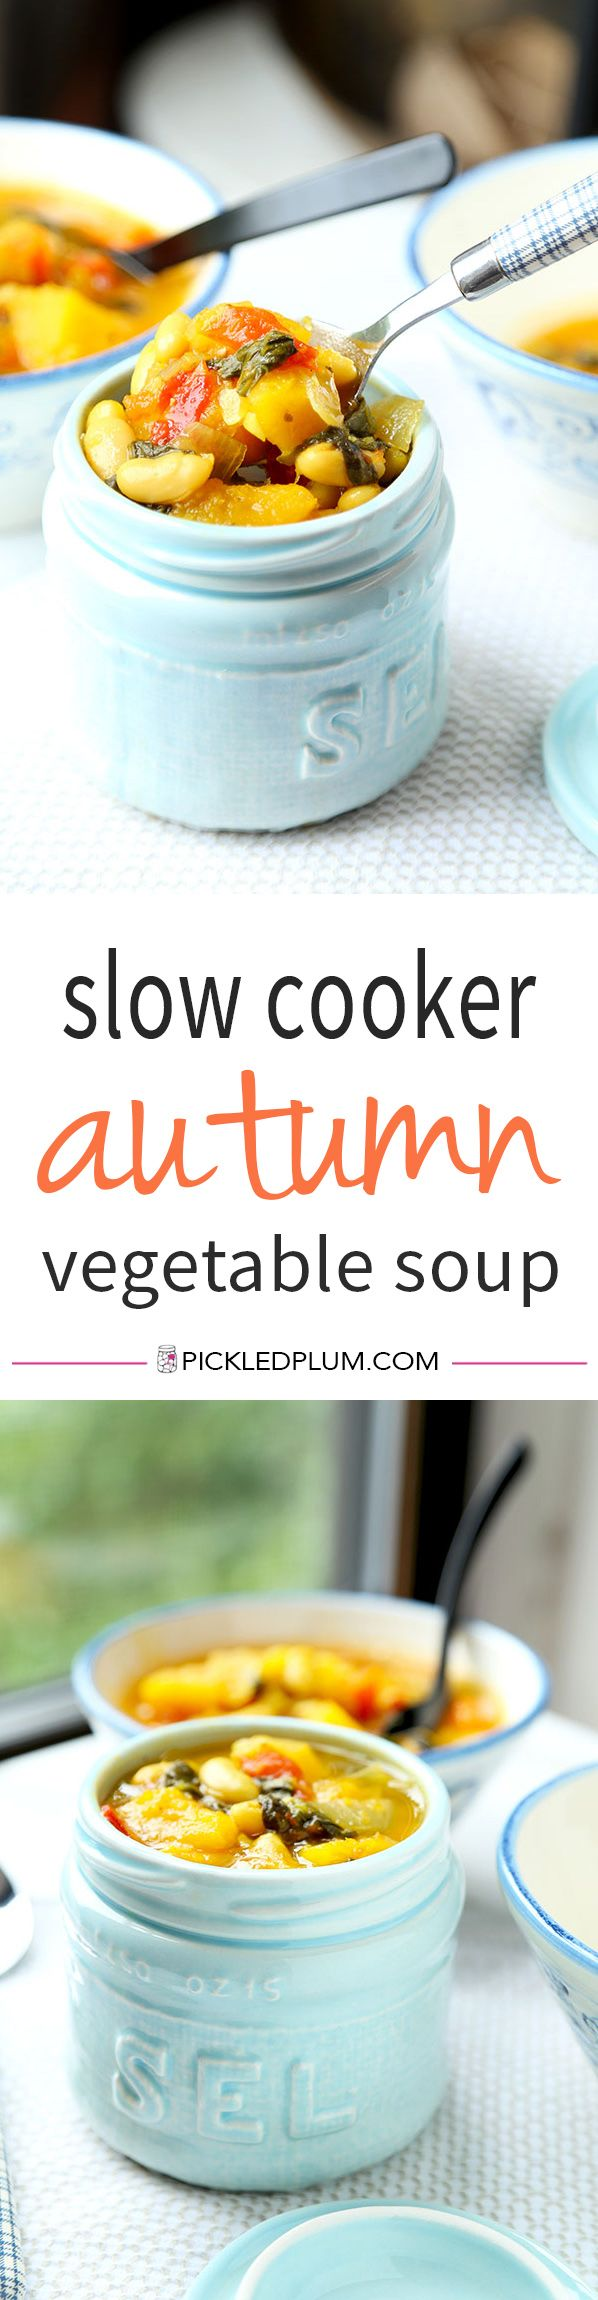 Slow Cooker Autumn Vegetable Soup - With warm, vivid colors like the afternoon light on a fall day, this Slow Cooker Autumn Vegetable Soup Recipe is vegan, gluten free and totally delicious! Recipe, vegan, gluten free, soup, appetizer, hearty | pickledplum.com